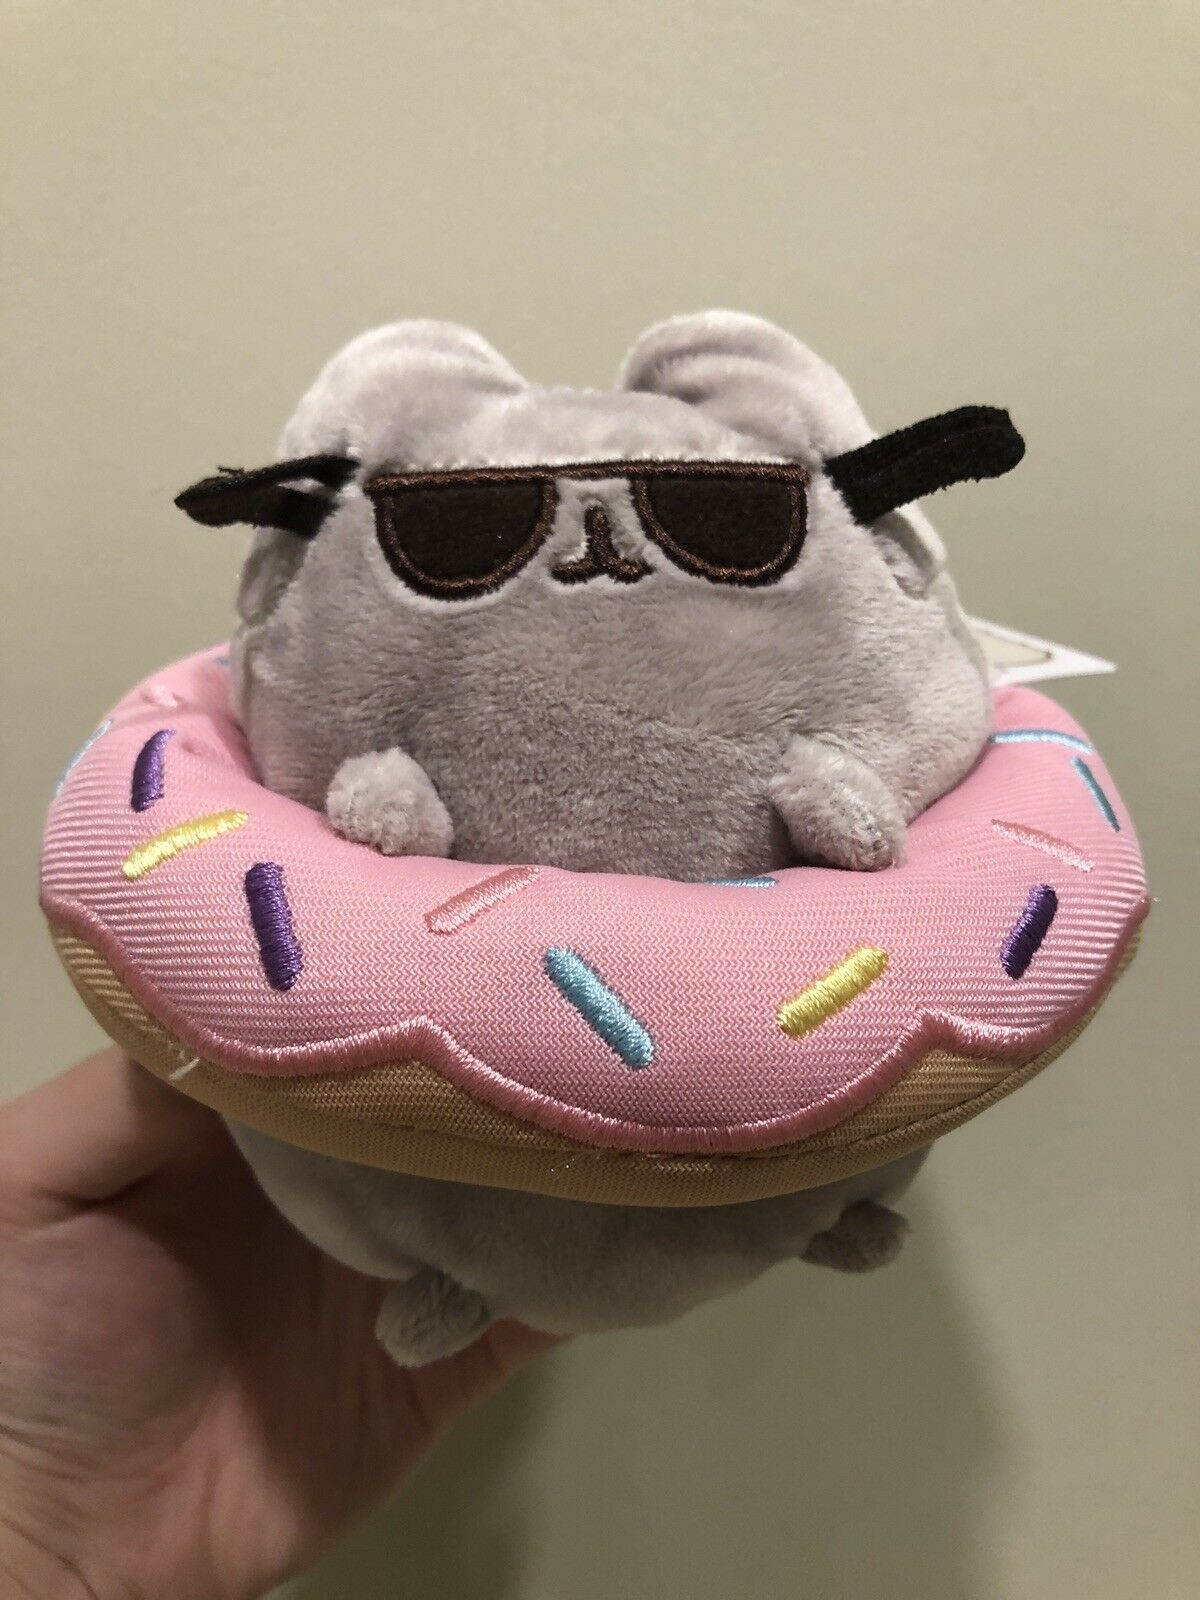 Pusheen macy 's exclusive donut schweben